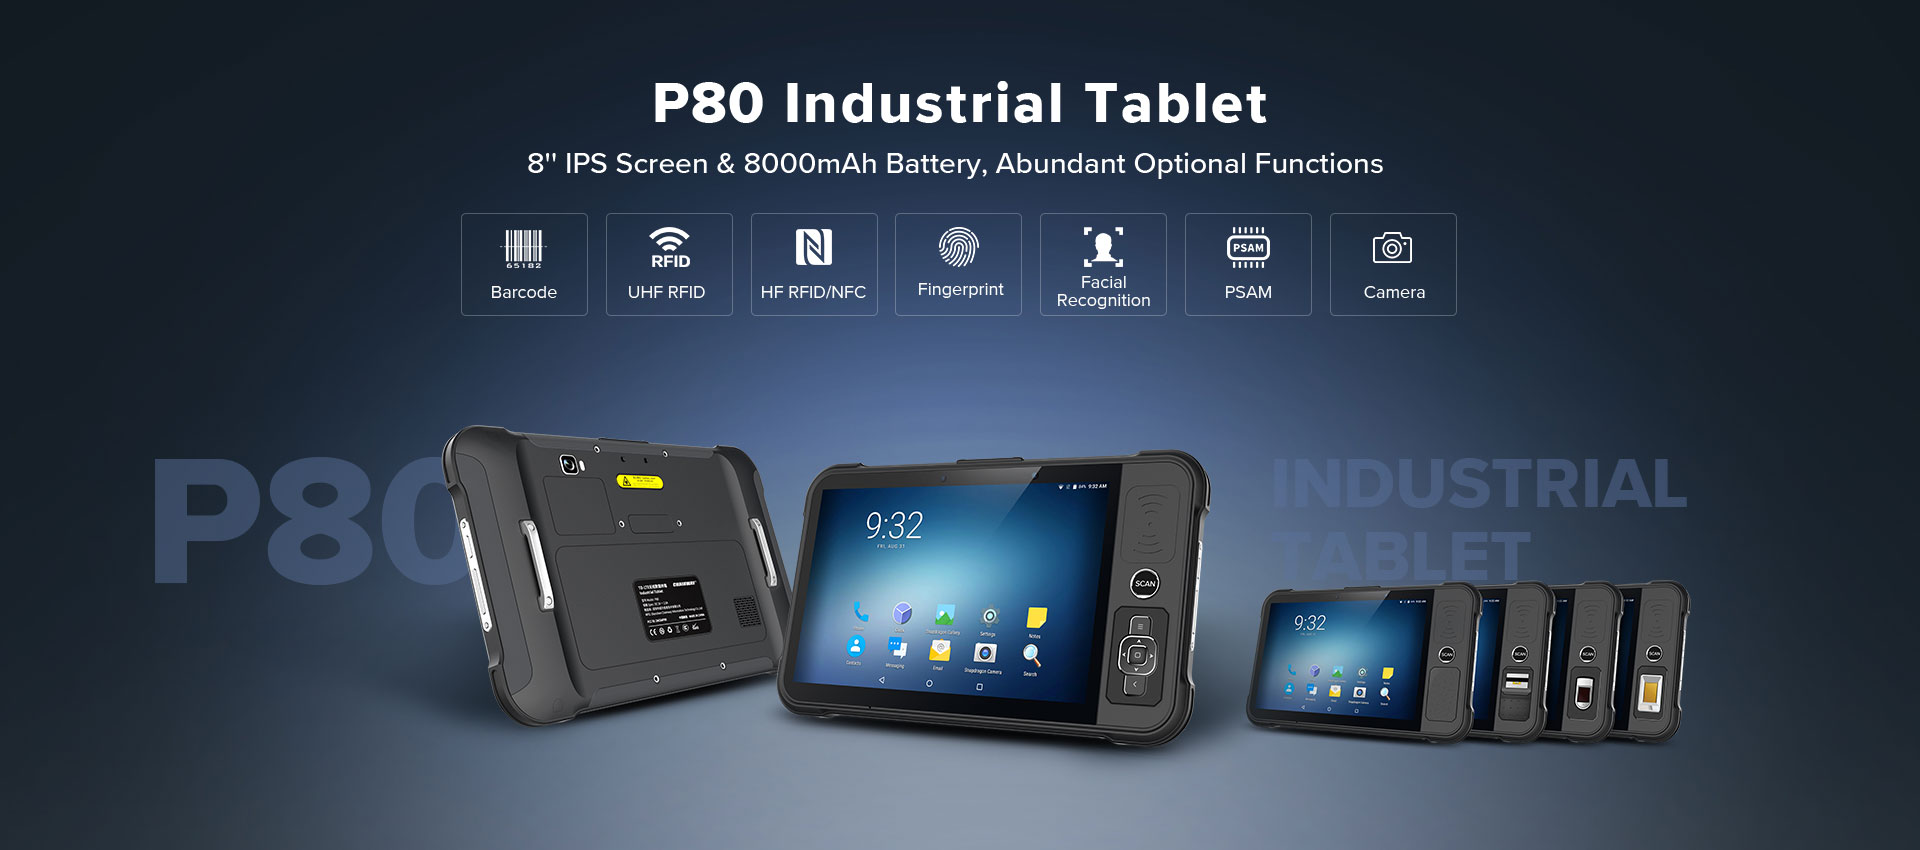 P80 - Android Rugged Tablet by RFID-Global - Industrial